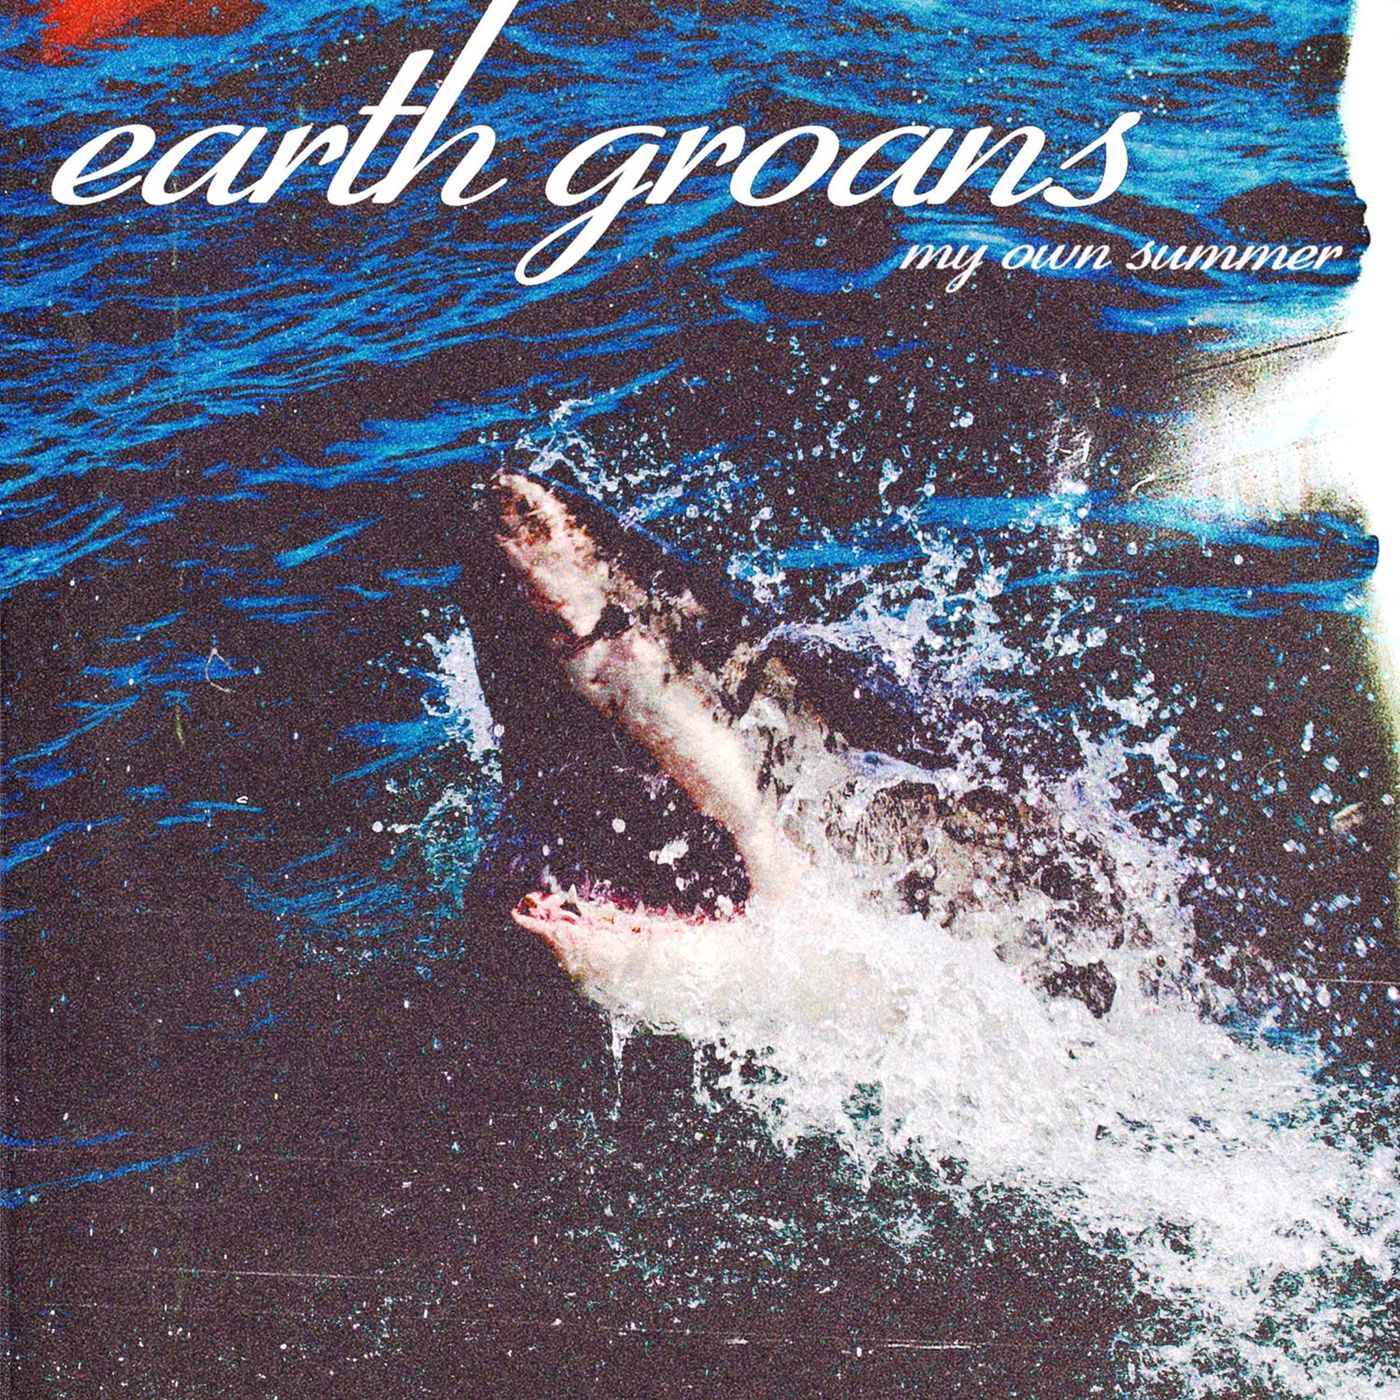 Earth Groans - My Own Summer (Shove It) [single] (2021)